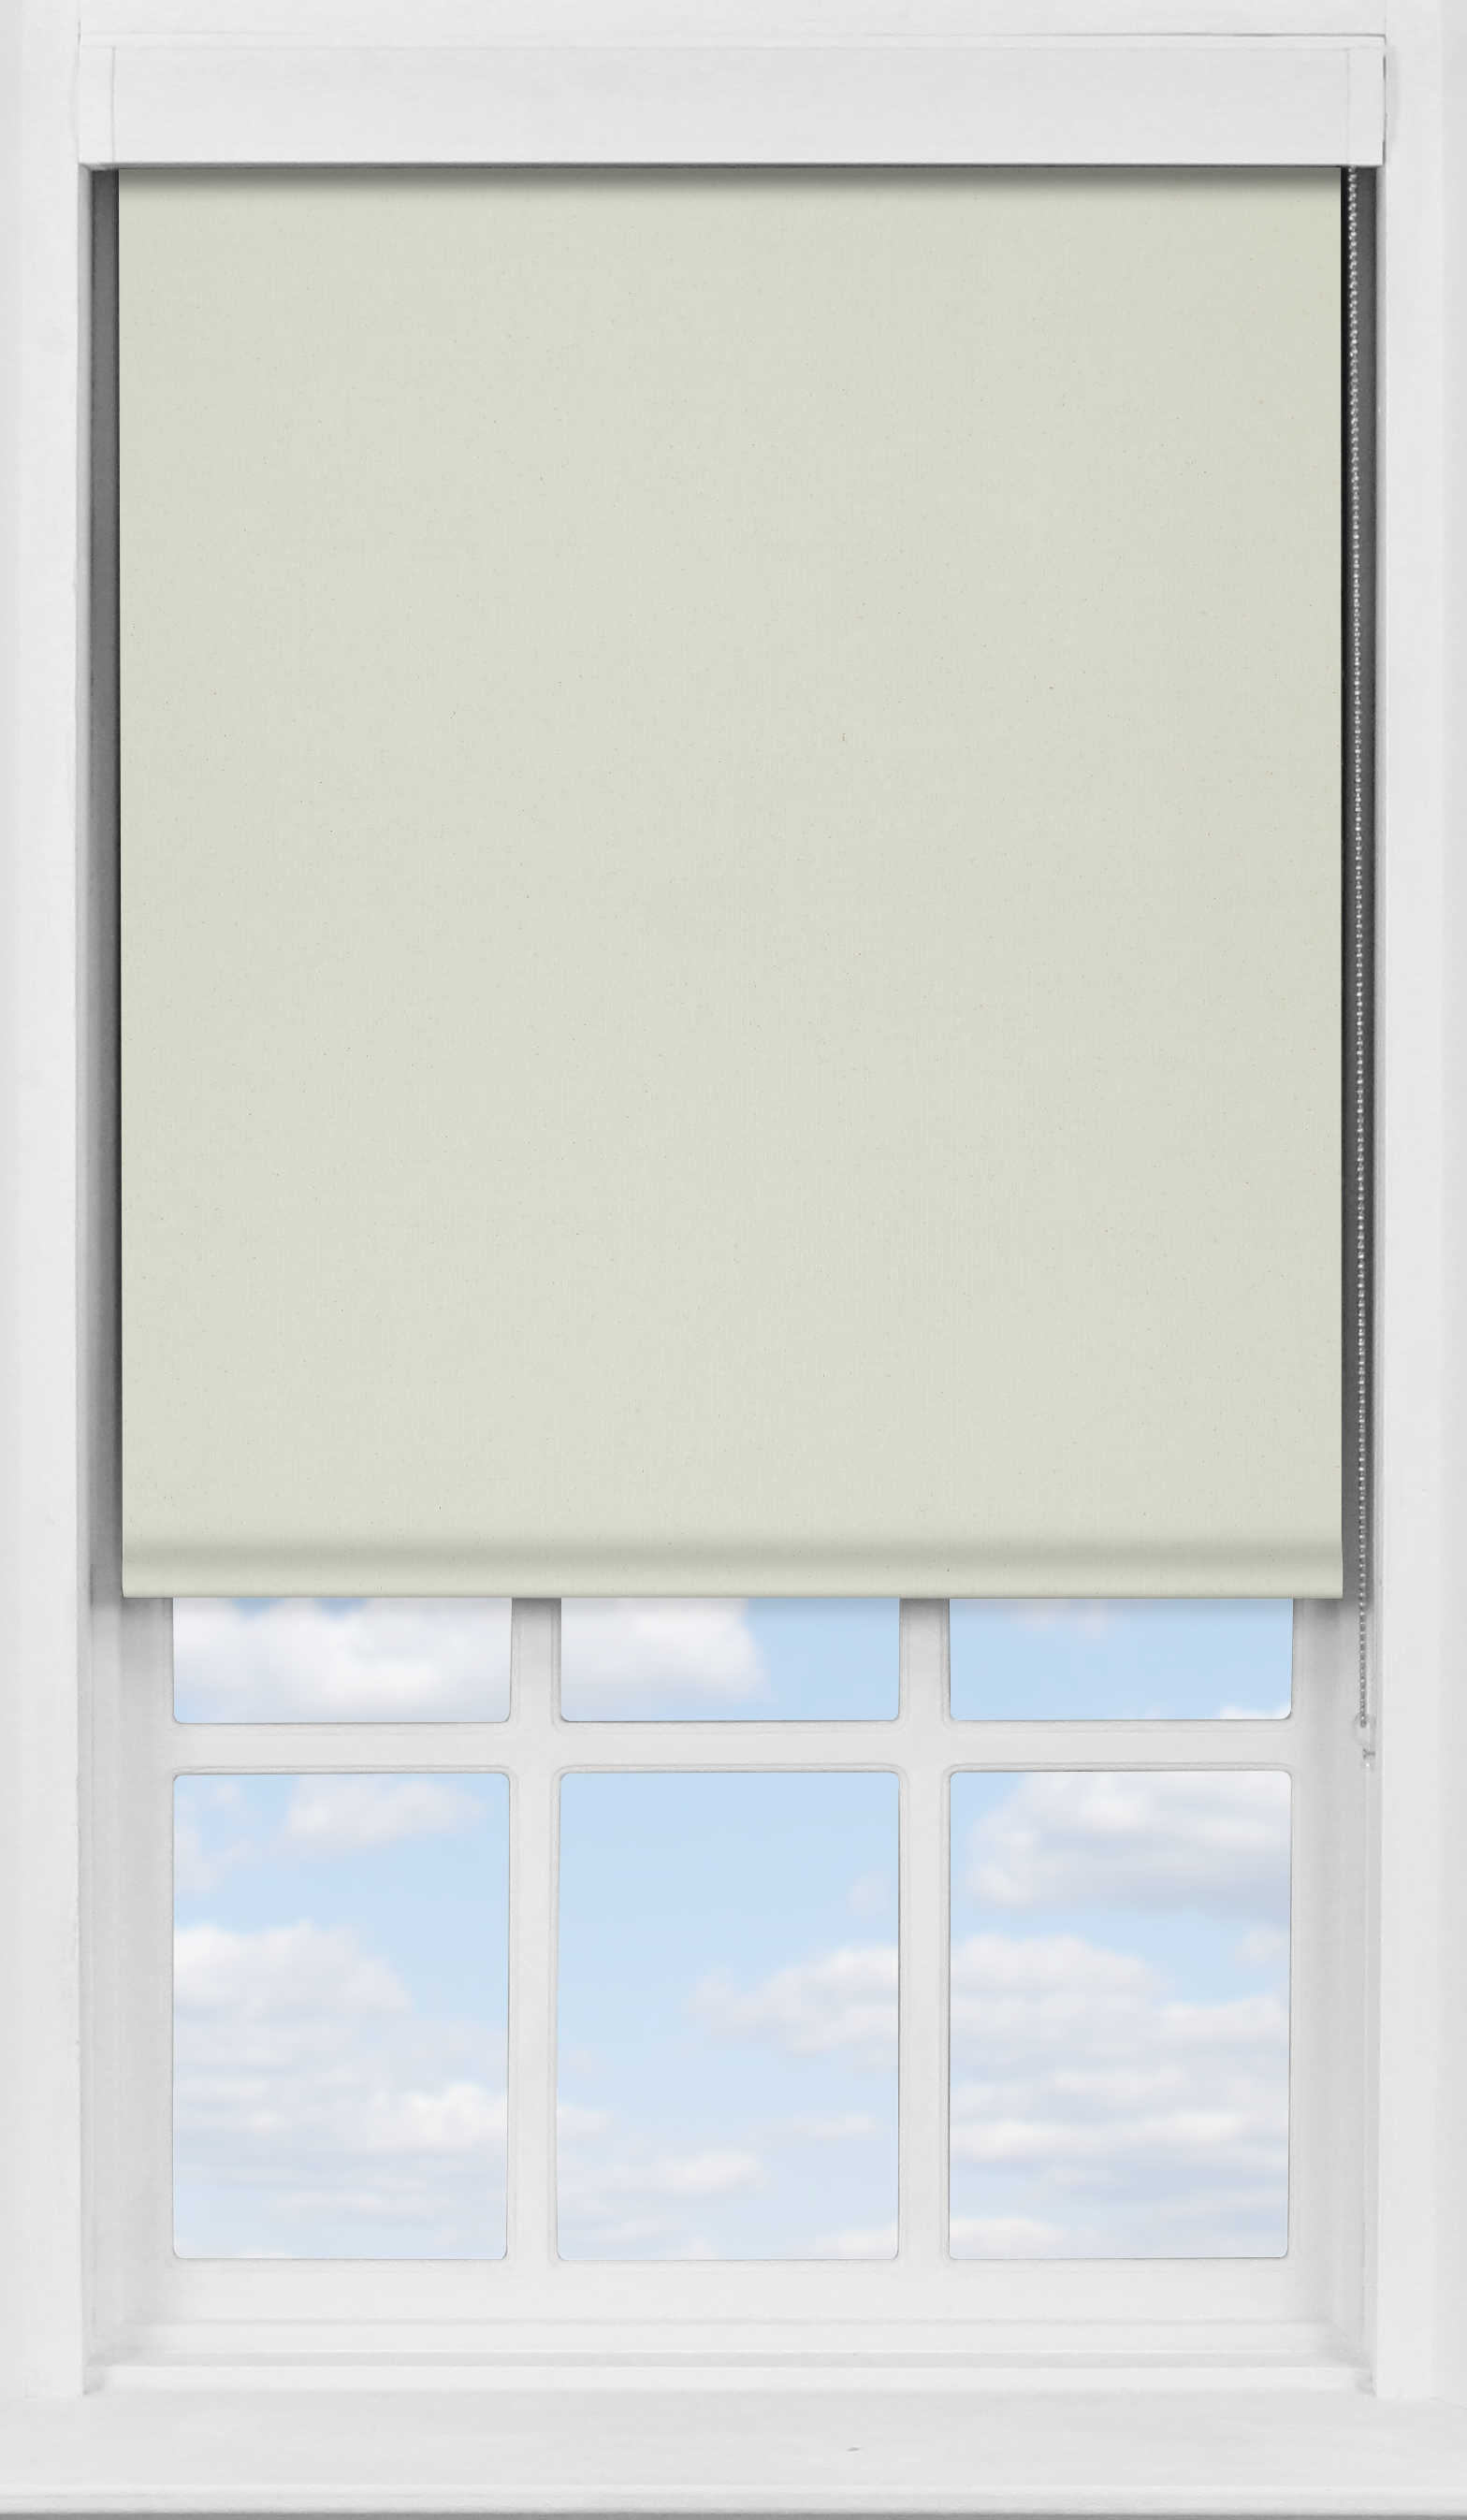 Premium Roller Blind in Natural Cream Transparent